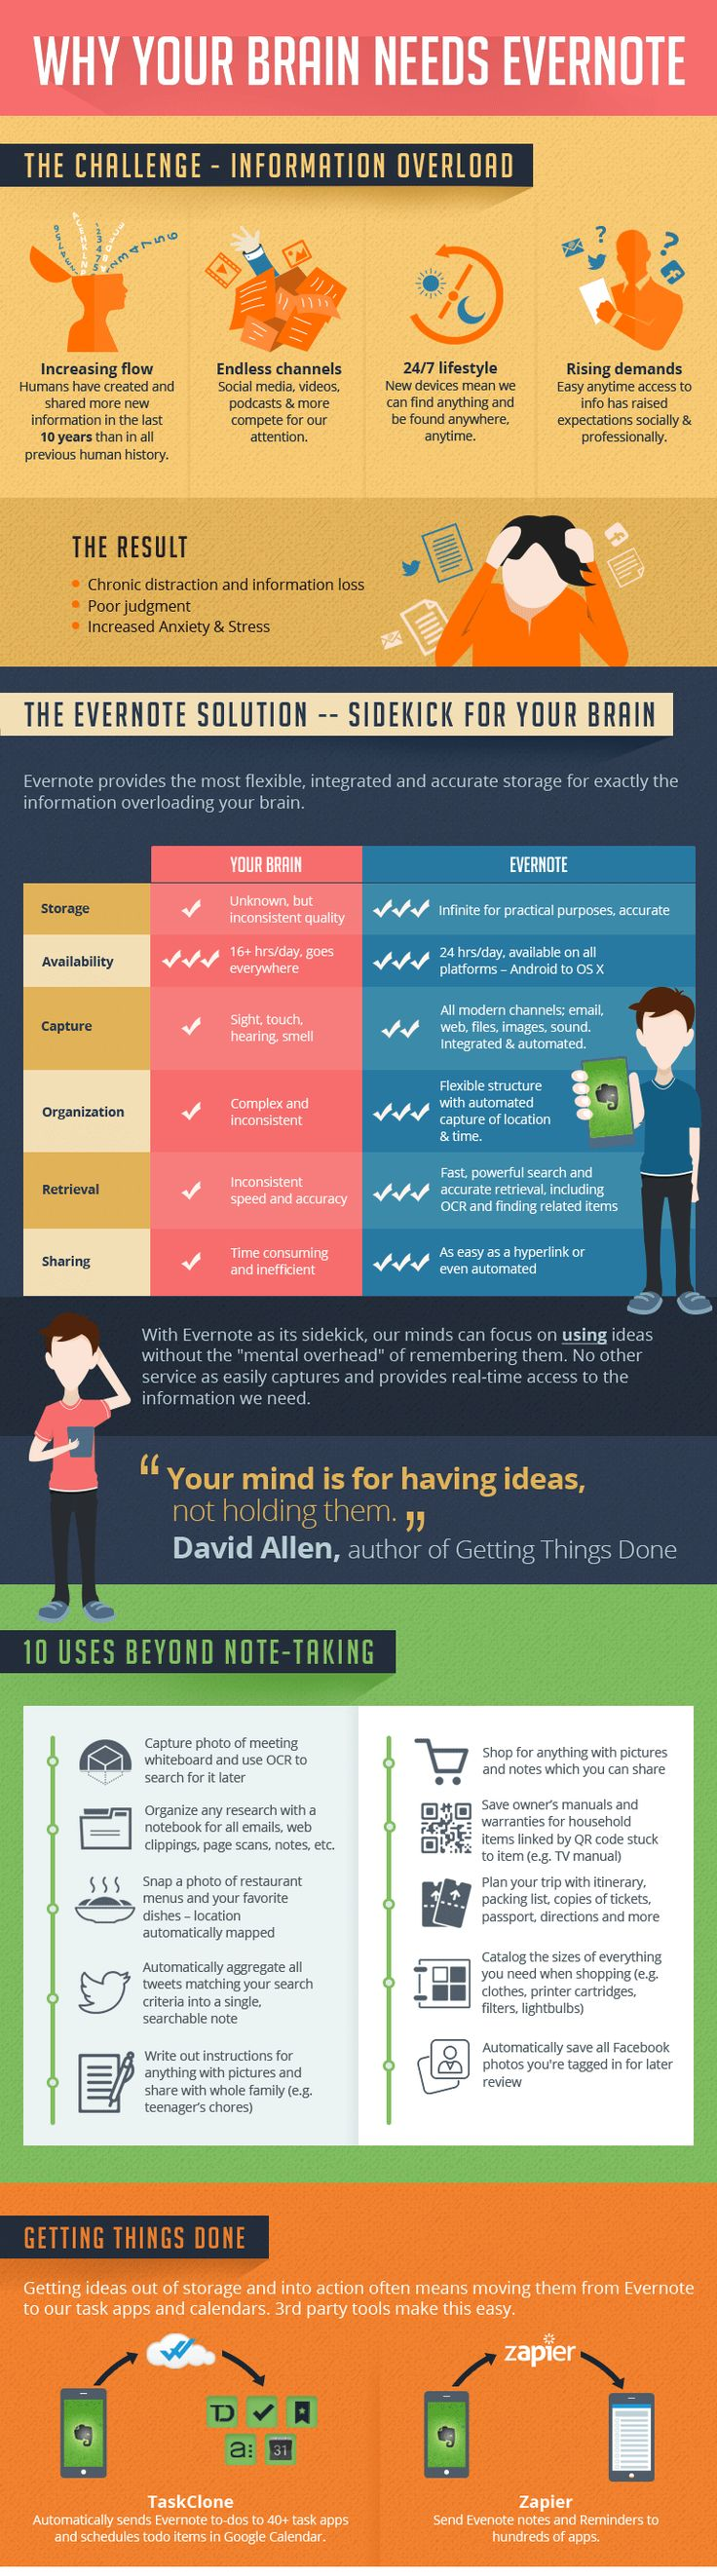 Why your brain is begging to use Evernote [Infographic] | Troy Christmas | LinkedIn